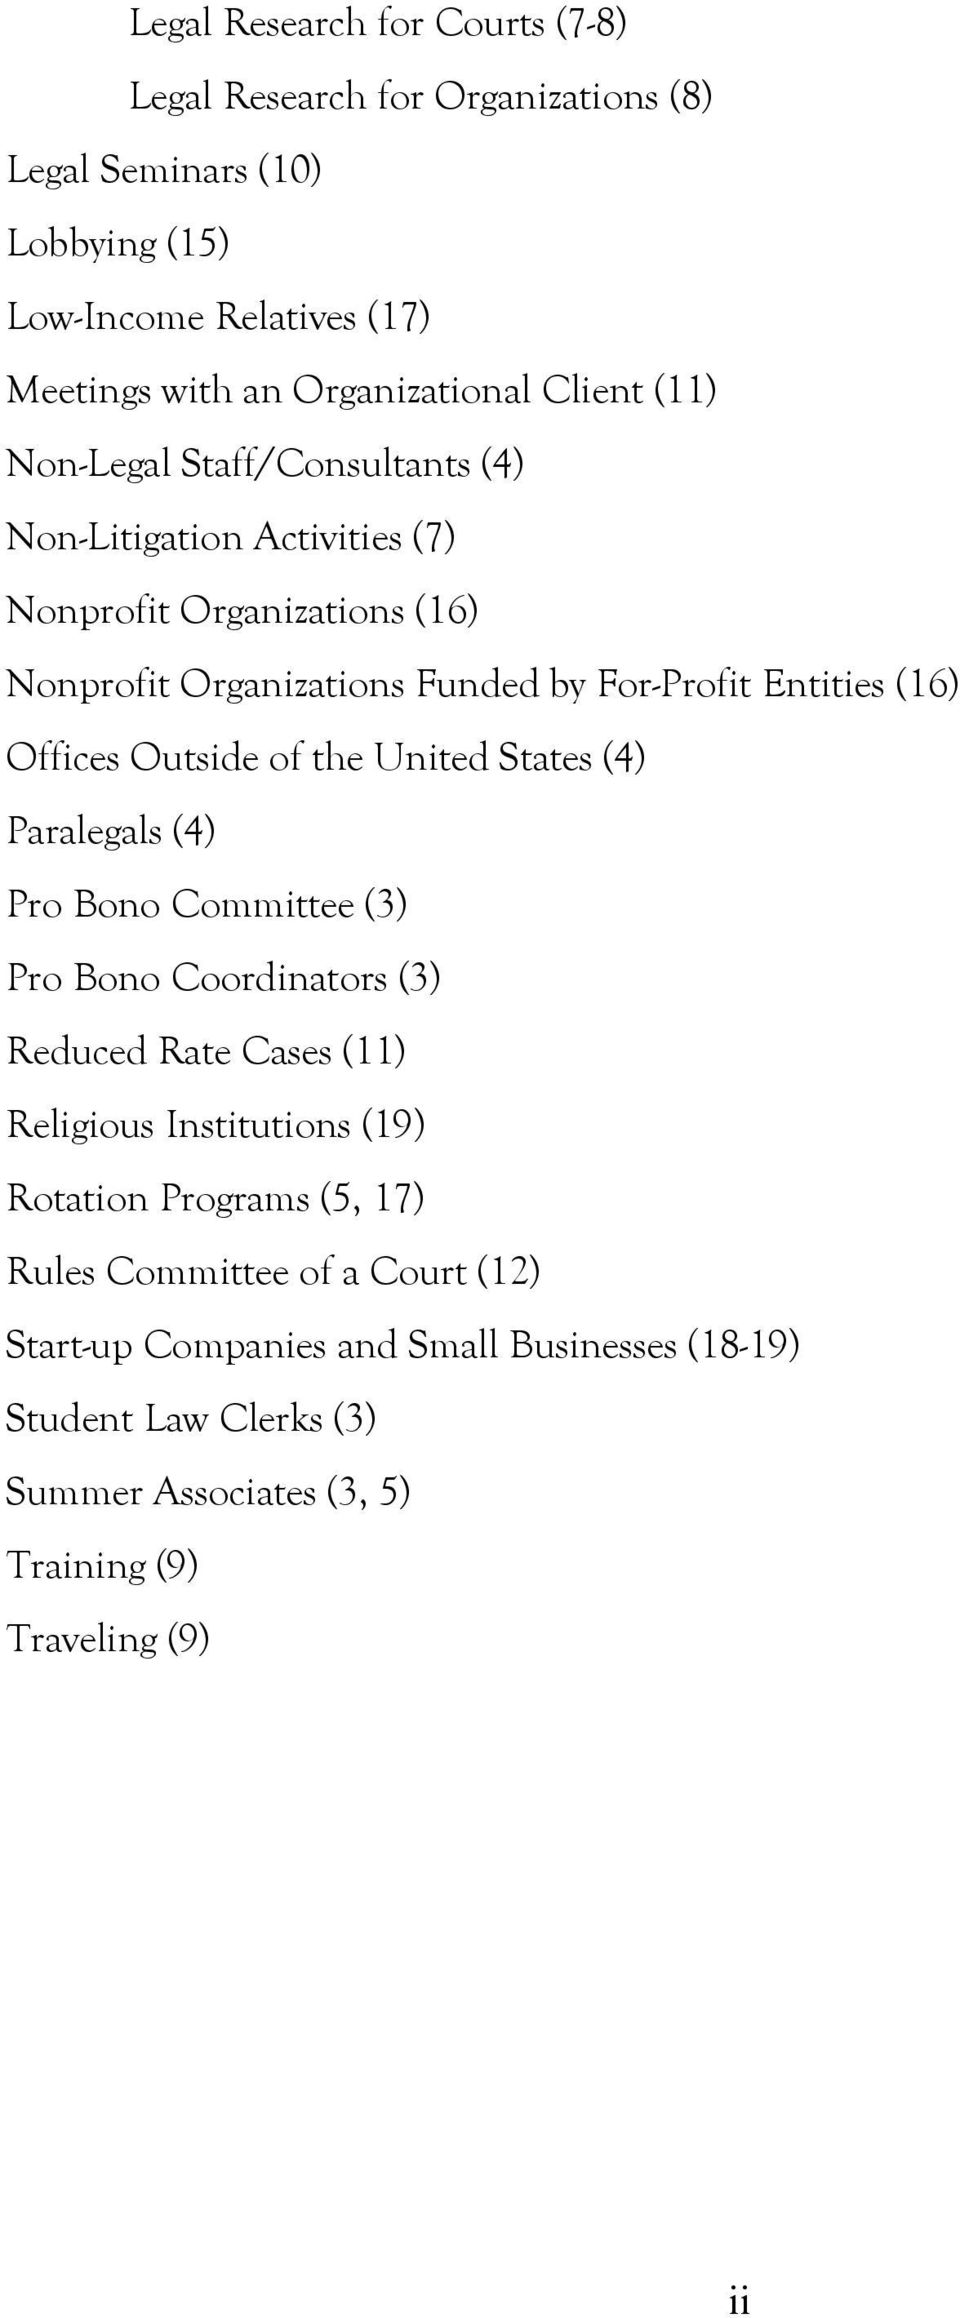 Offices Outside of the United States (4) Paralegals (4) Pro Bono Committee (3) Pro Bono Coordinators (3) Reduced Rate Cases (11) Religious Institutions (19) Rotation